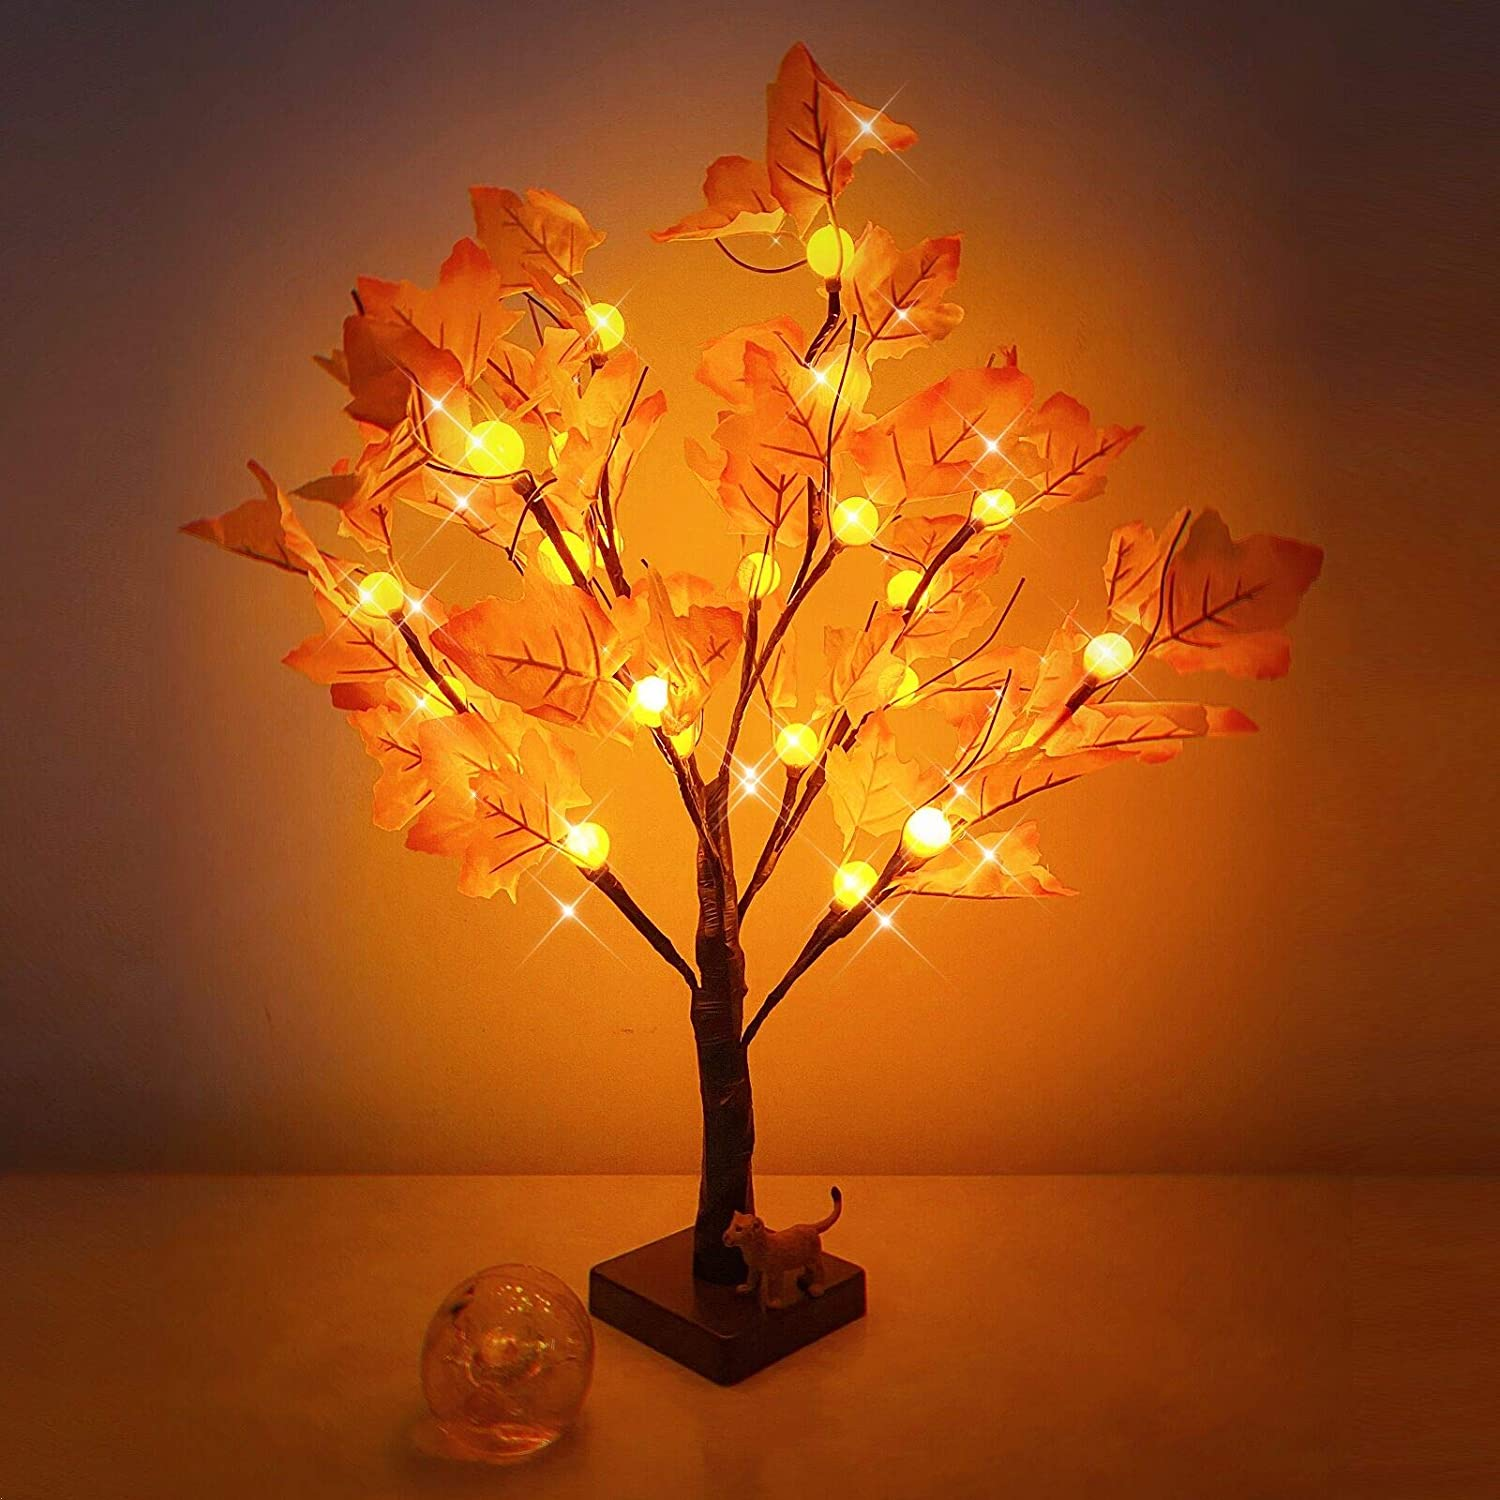 Amazon Com Artificial Fall Lighted Maple Tree 24 Led Pumpkin Lights Halloween Thanksgiving Decorations Table Lights Battery Operated For Autumn Decoration Wedding Party Gifts Indoor Outdoor Harvest Home Decor Home Kitchen